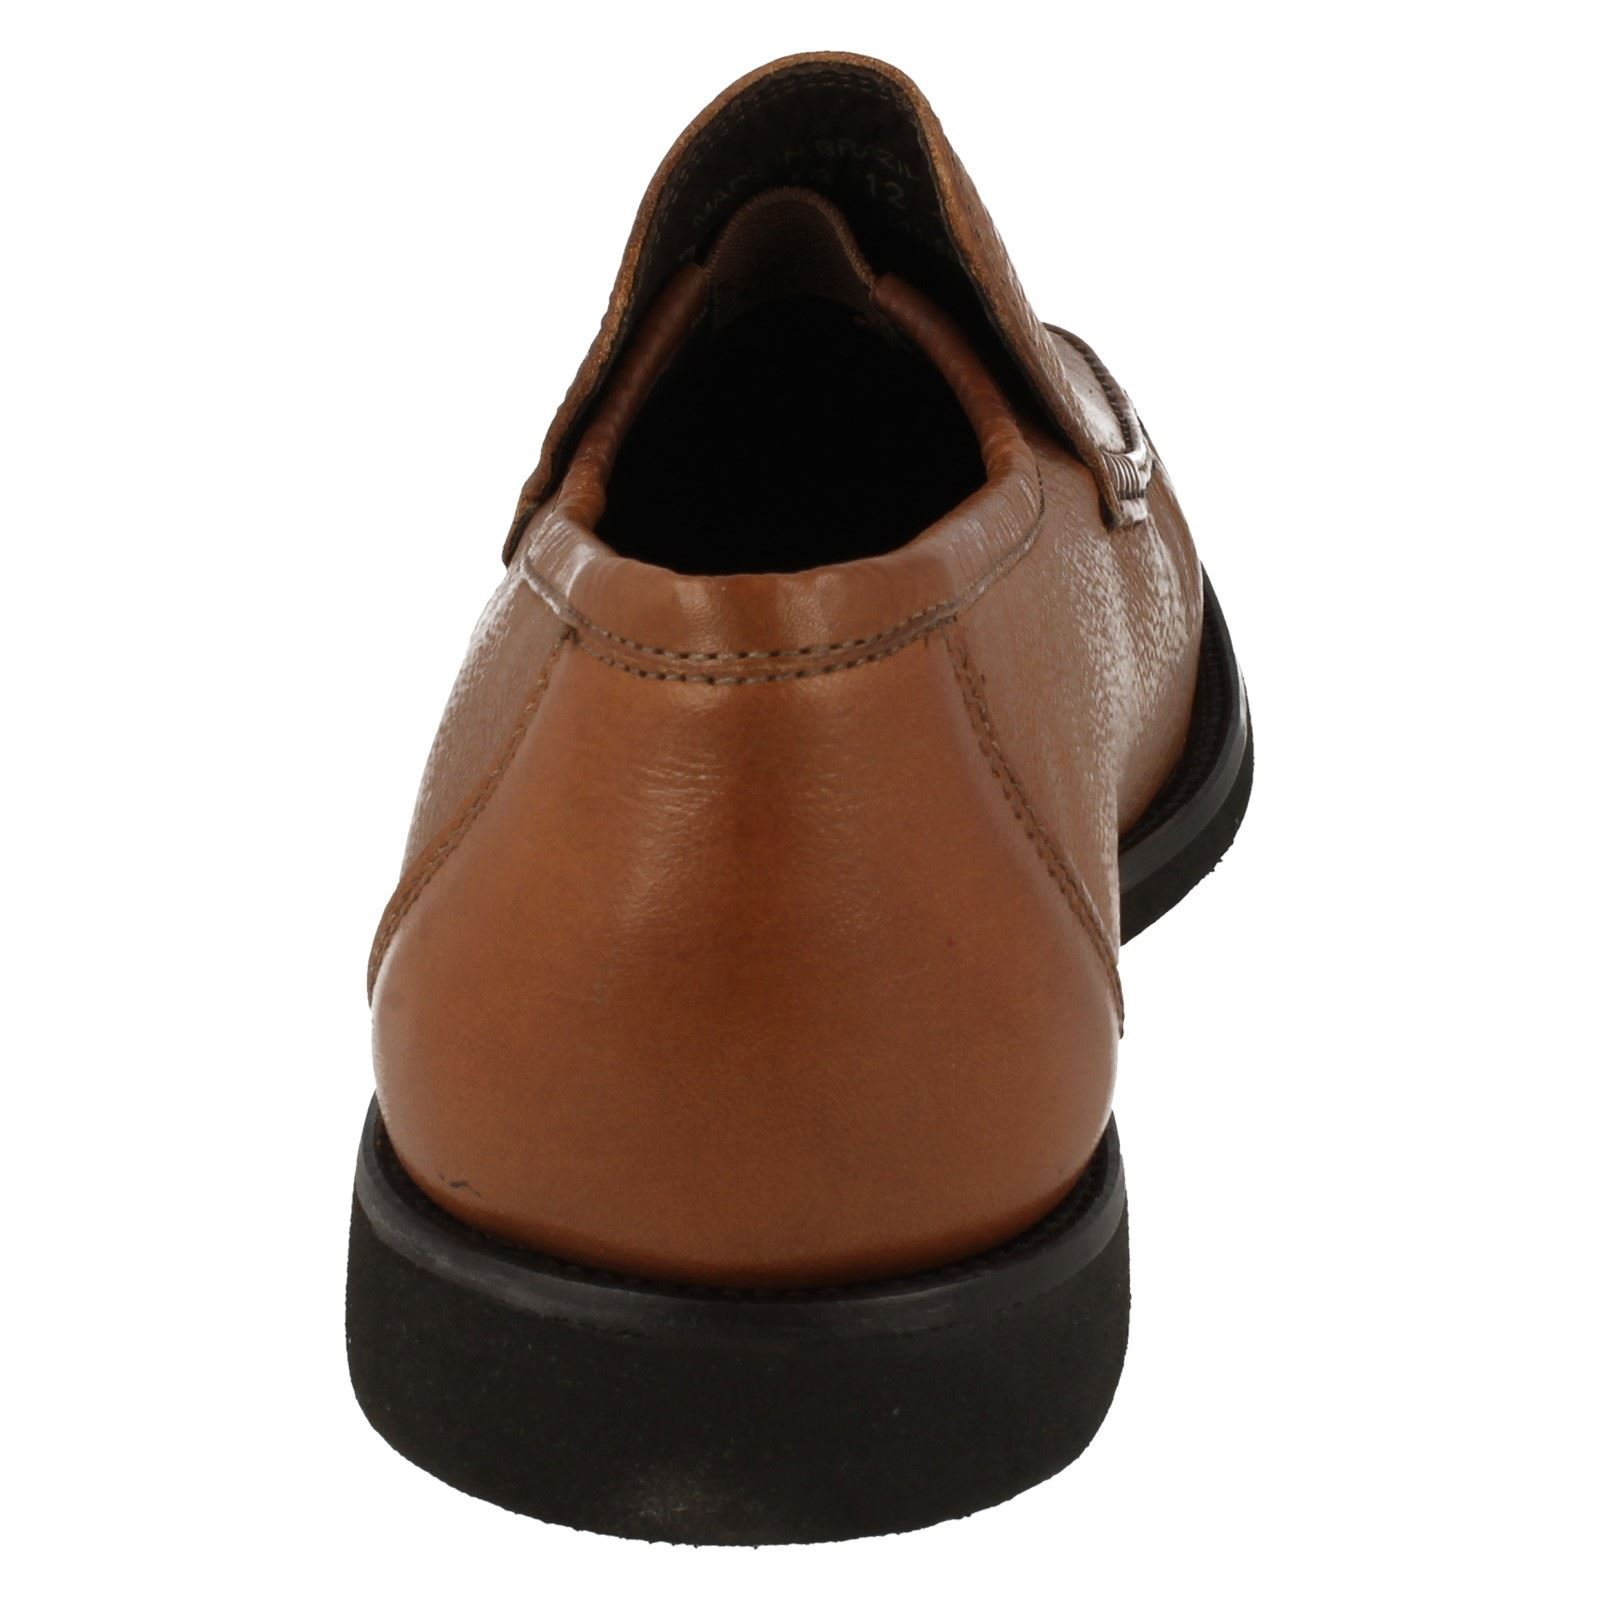 Mens Anatomic Smart Moccasin Shoes 'Angra' 'Angra' Shoes ce71a5